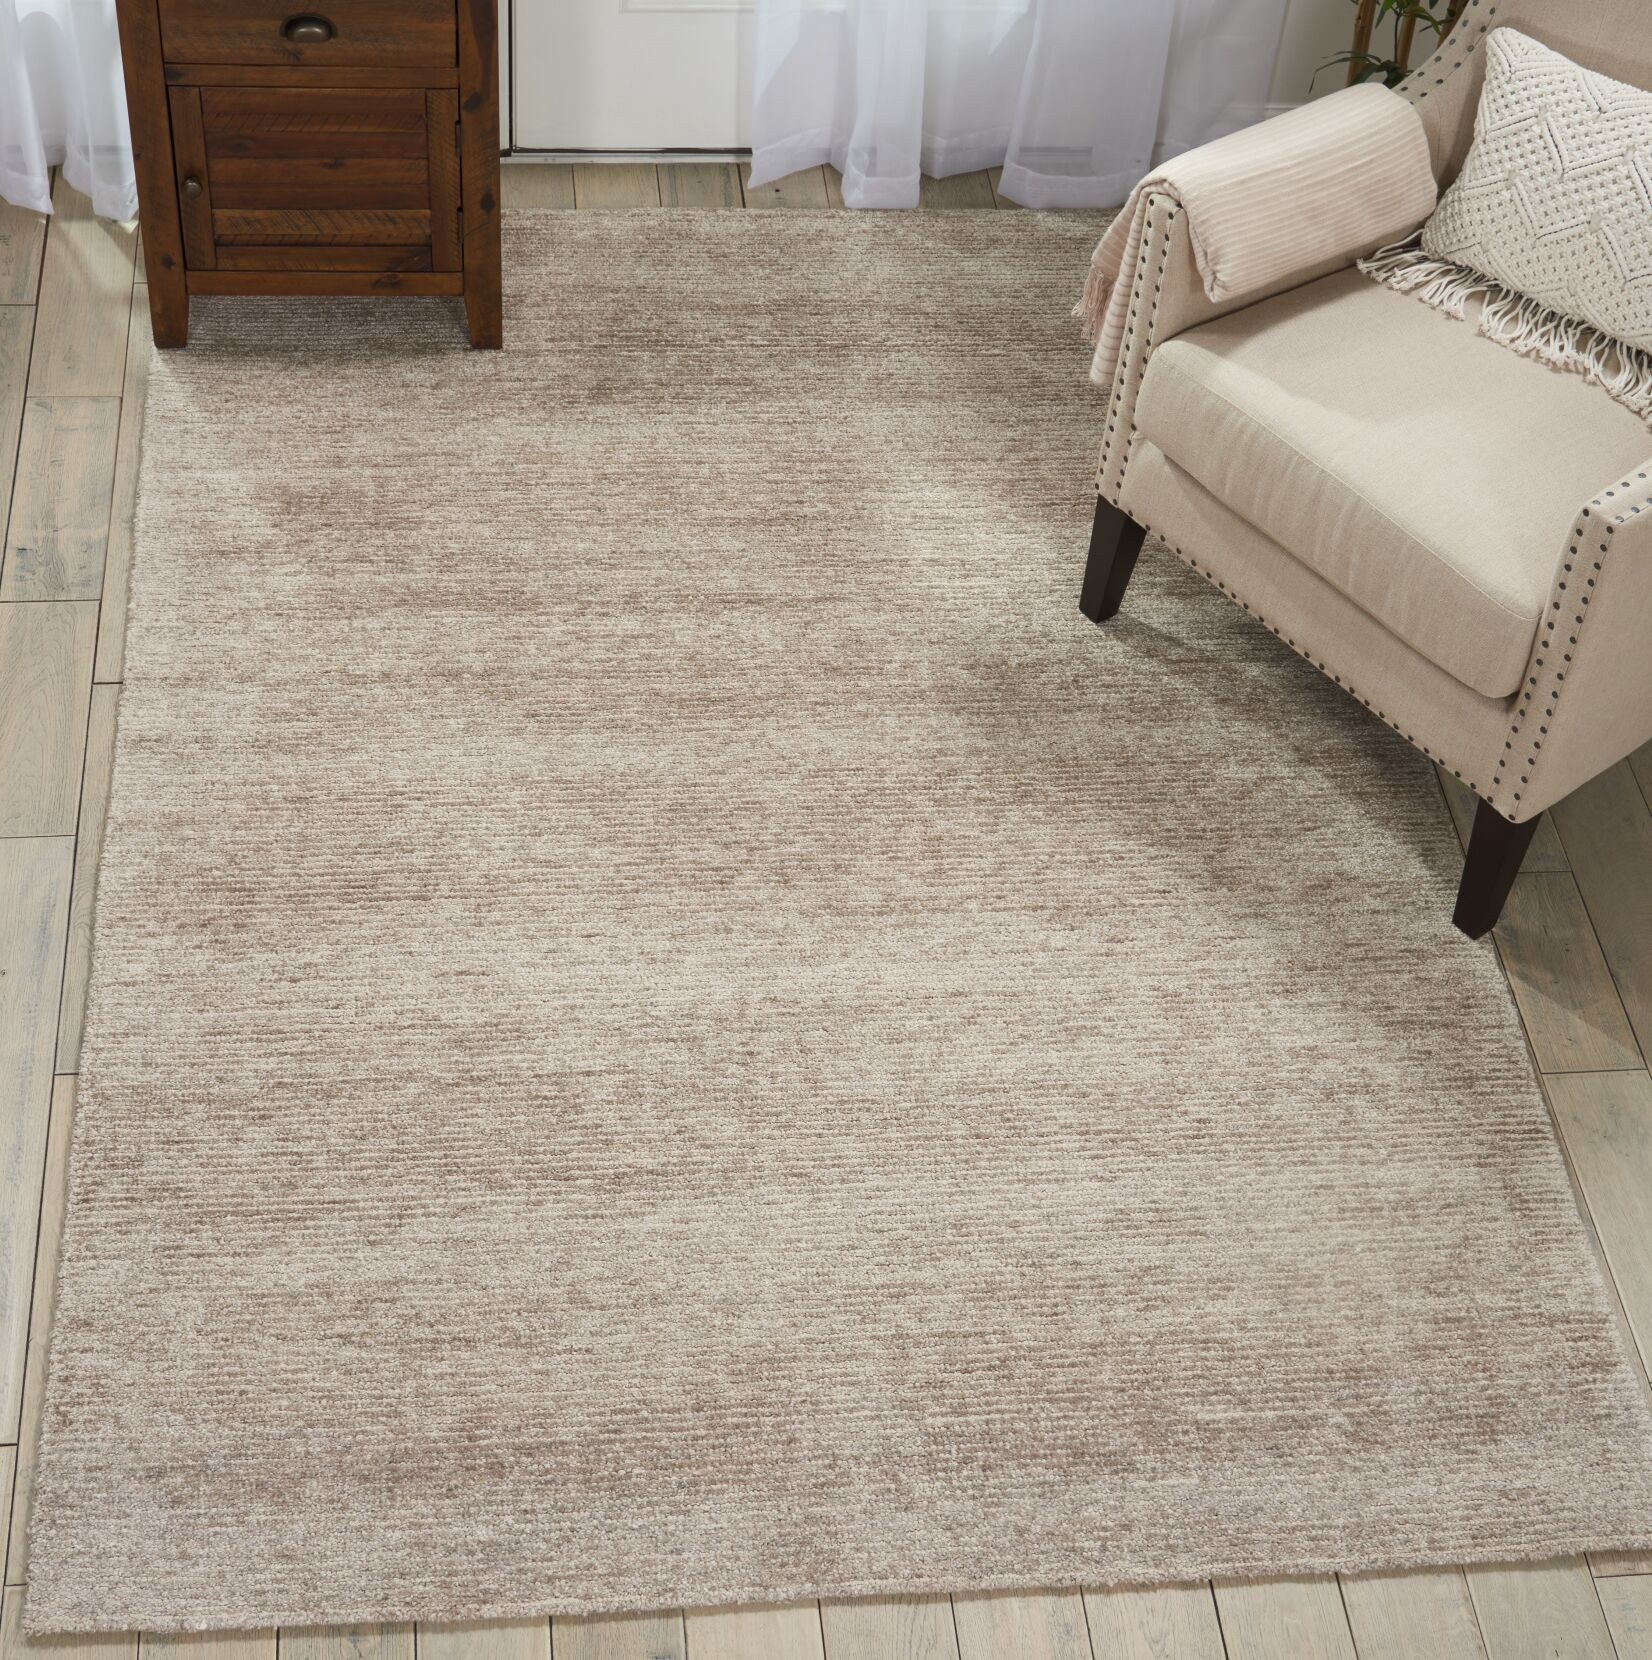 Romans Solid Hand-Tufted Oatmeal Beige Area Rug Rug Size: Rectangle 8' x 10'6